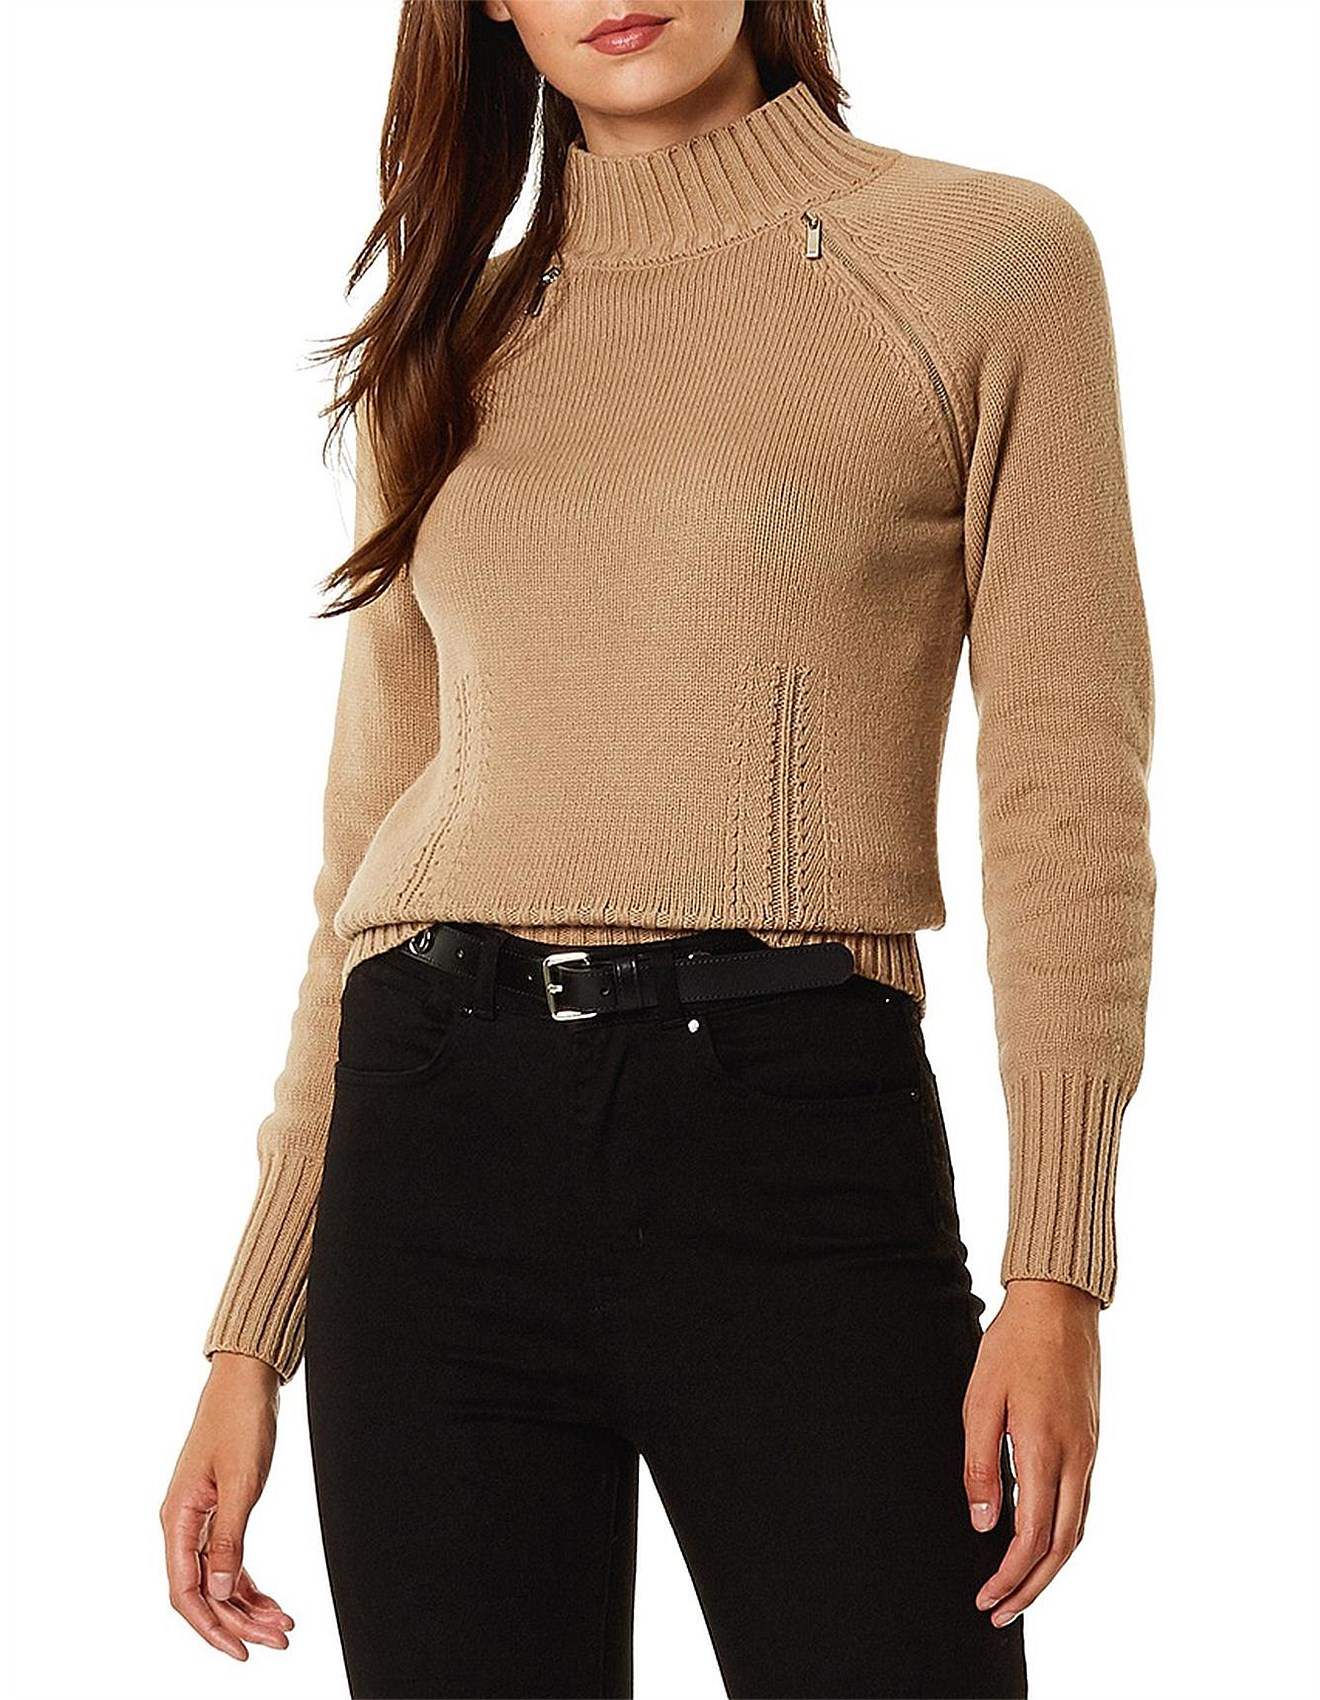 53cd23101dd2b9 Karen Millen | Buy Karen Millen Clothing Online | David Jones - HIGH NECK  WOOL JUMPER